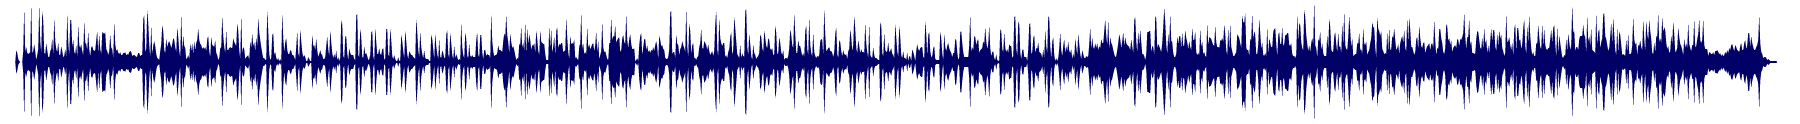 waveform of track #77684